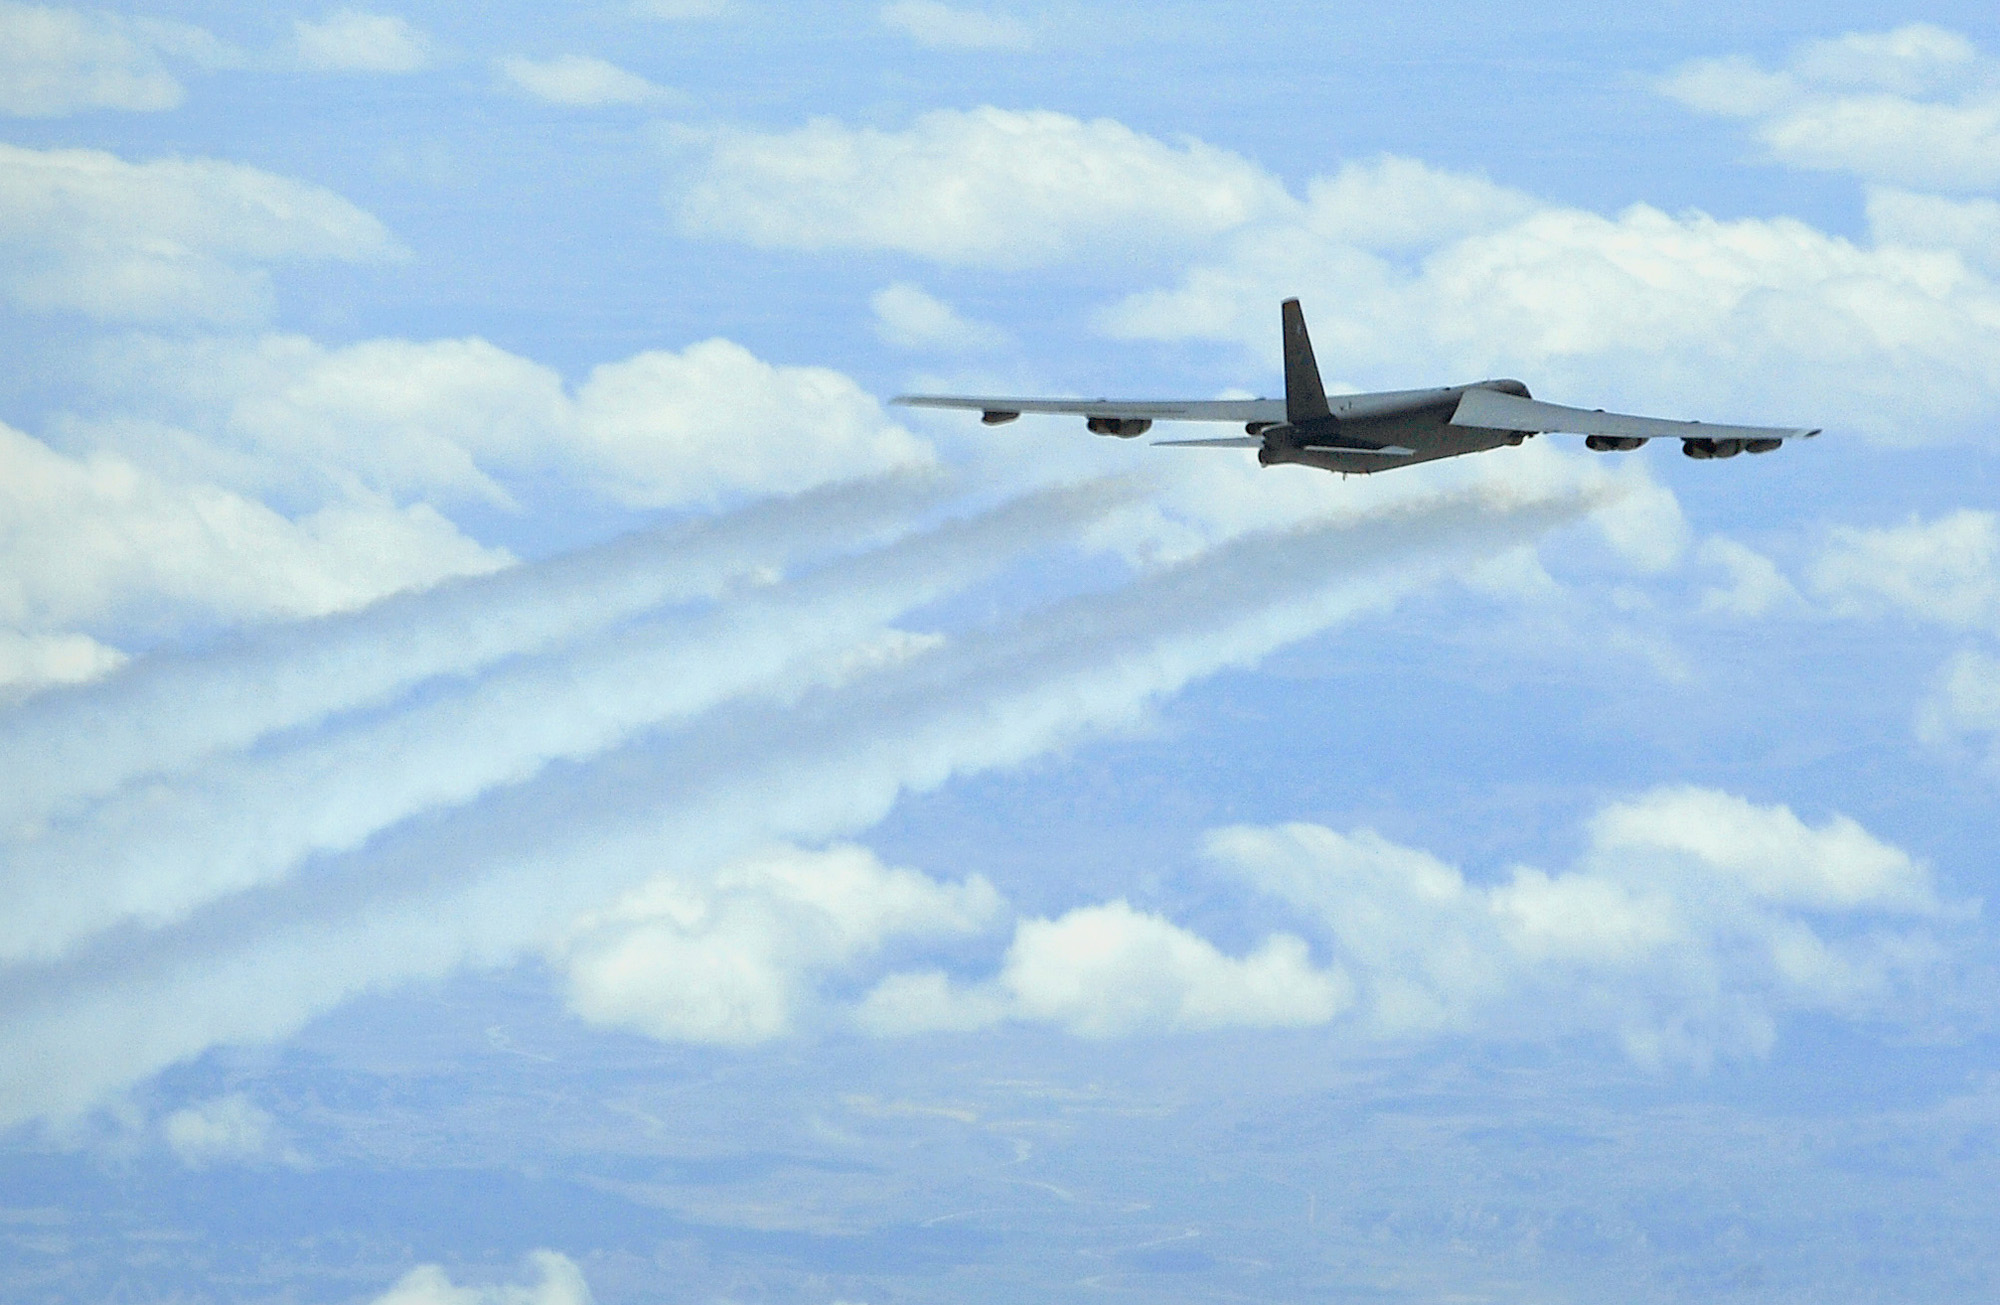 Air Force Secretary: Catastrophic Engine Failure Likely to Blame for Minot B-52 Mishap